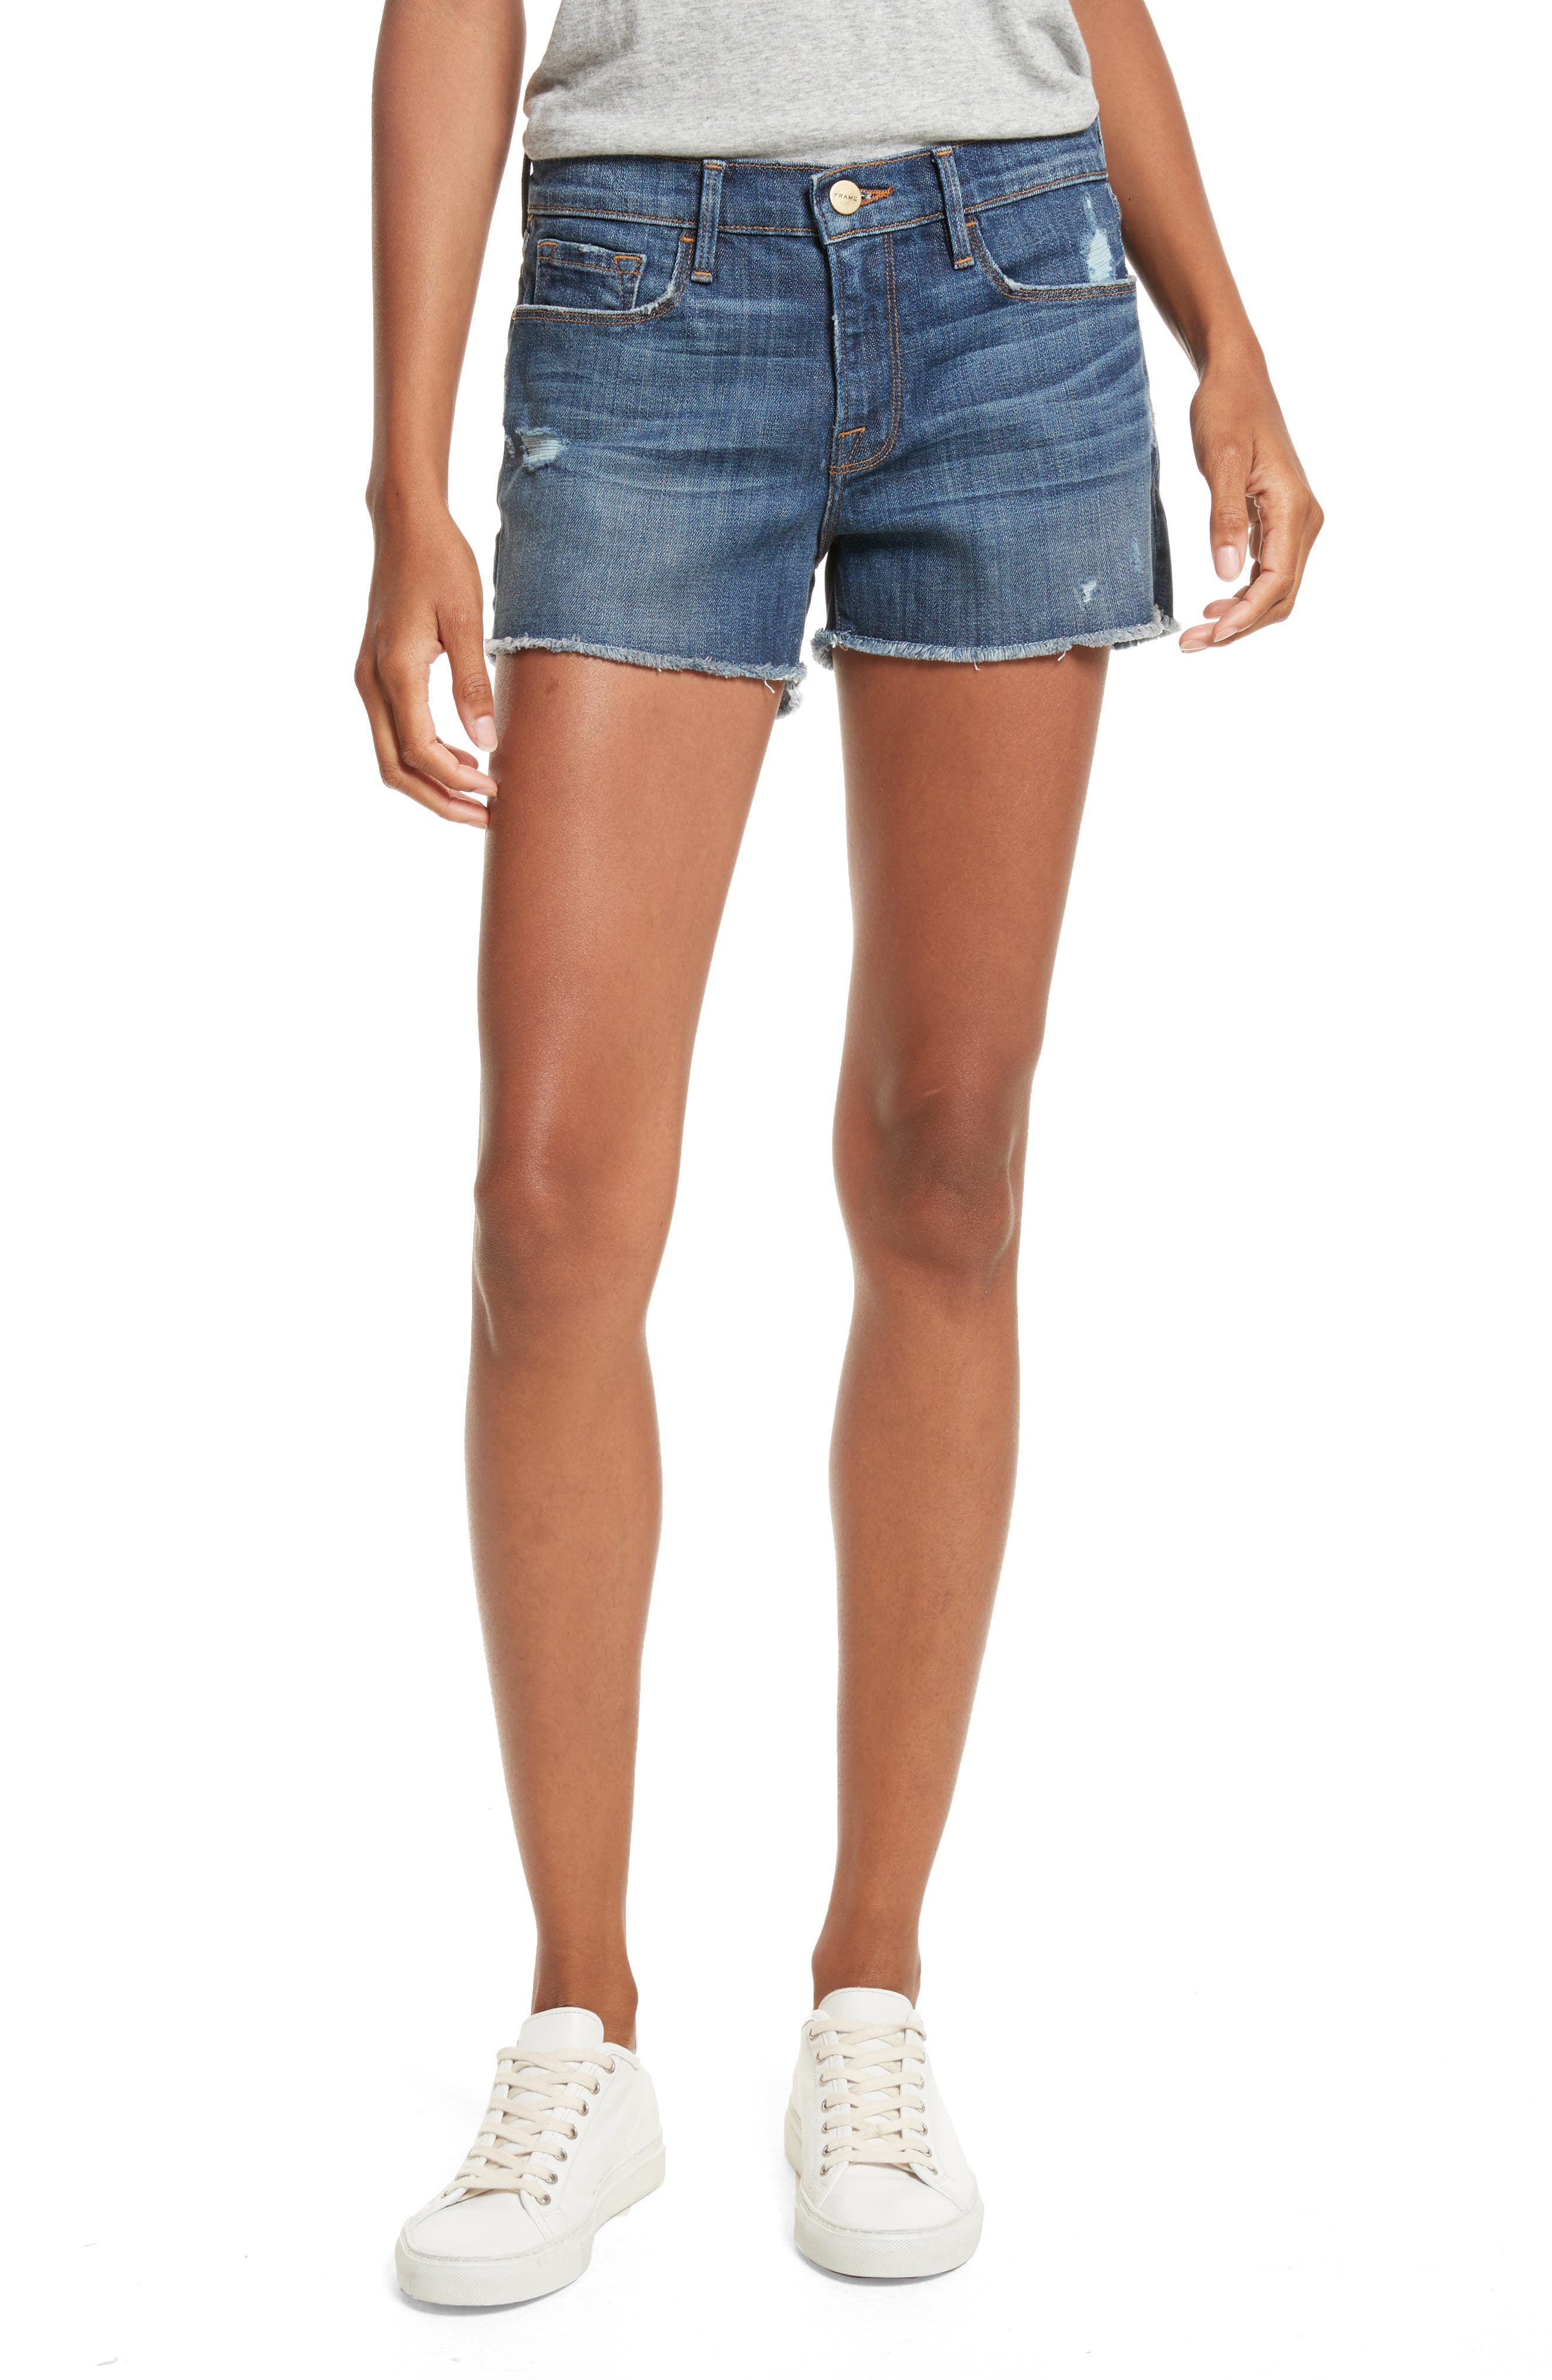 Le Cutoff Denim Shorts,                         Main,                         color, Eckford